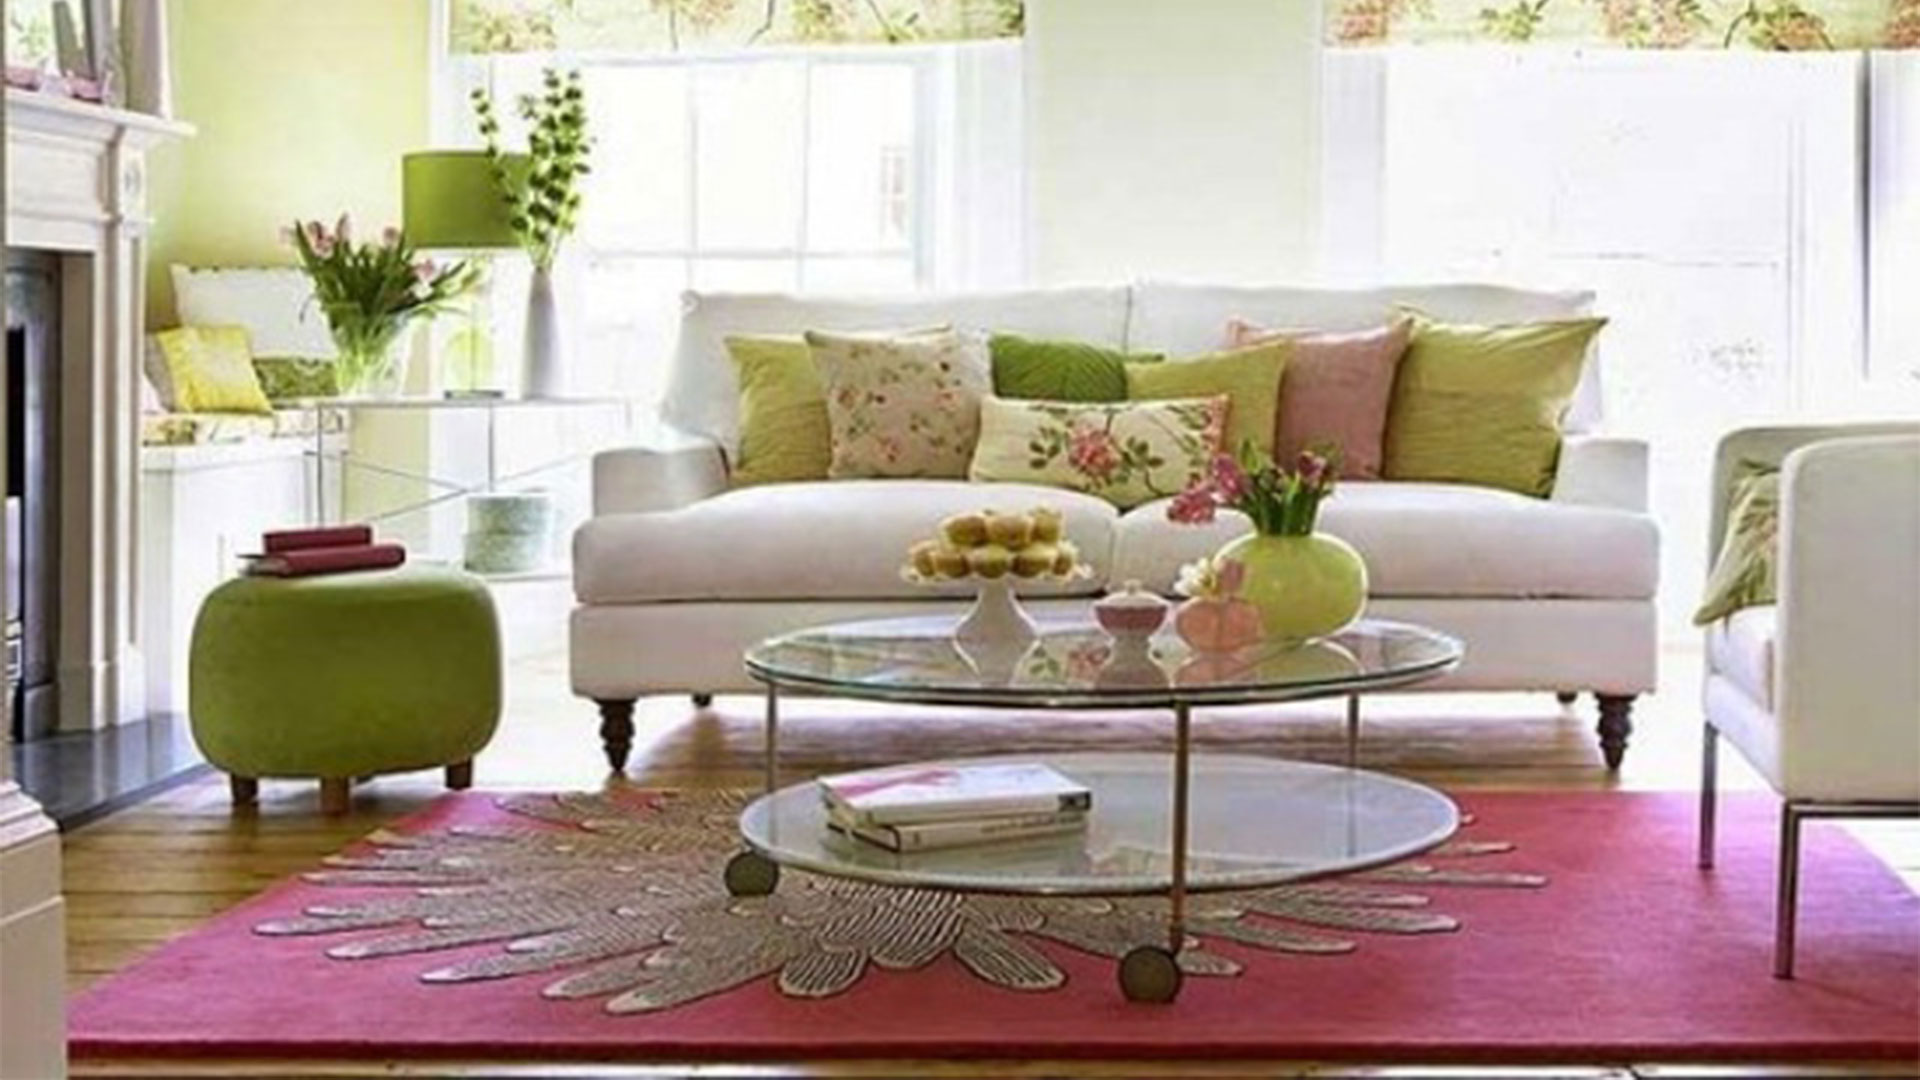 36 living room decorating ideas that smells like spring Design ideas for living room